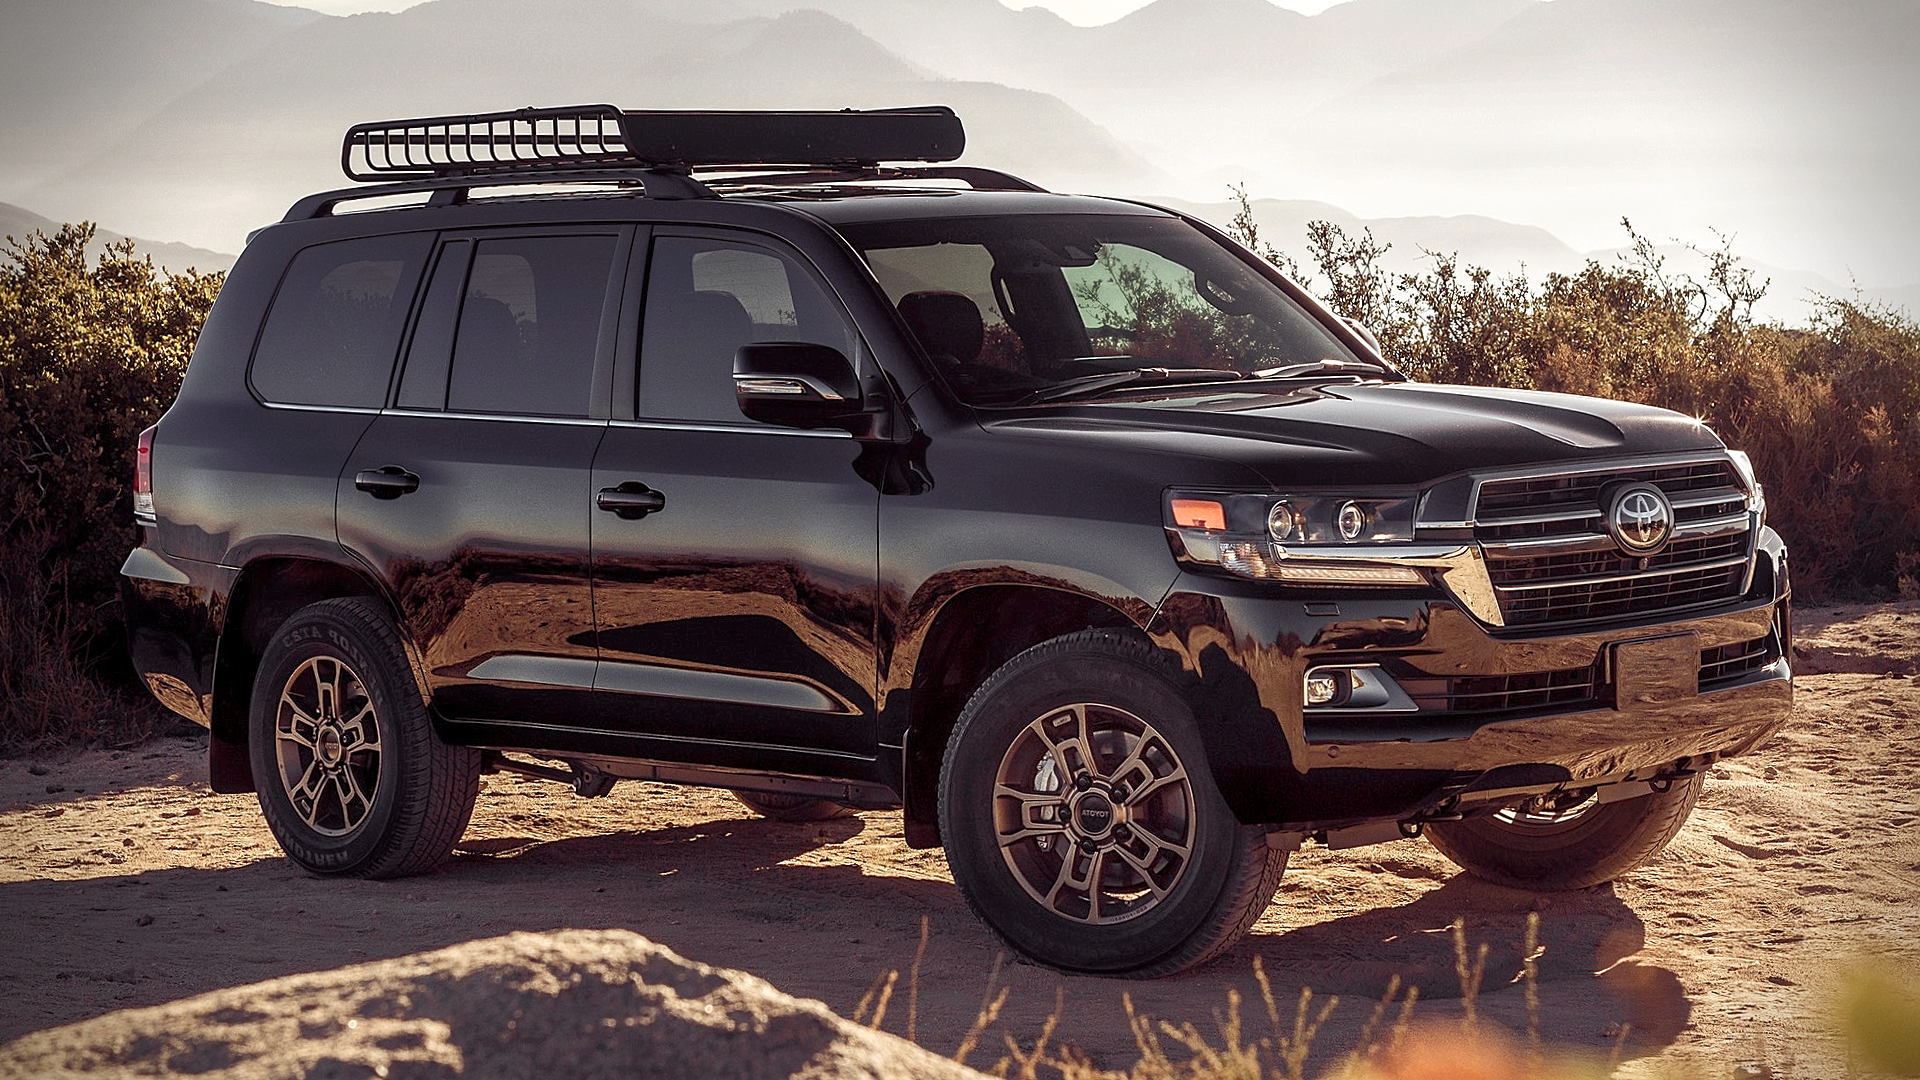 2021 Toyota Land Cruiser Black SUV Pictures Photos